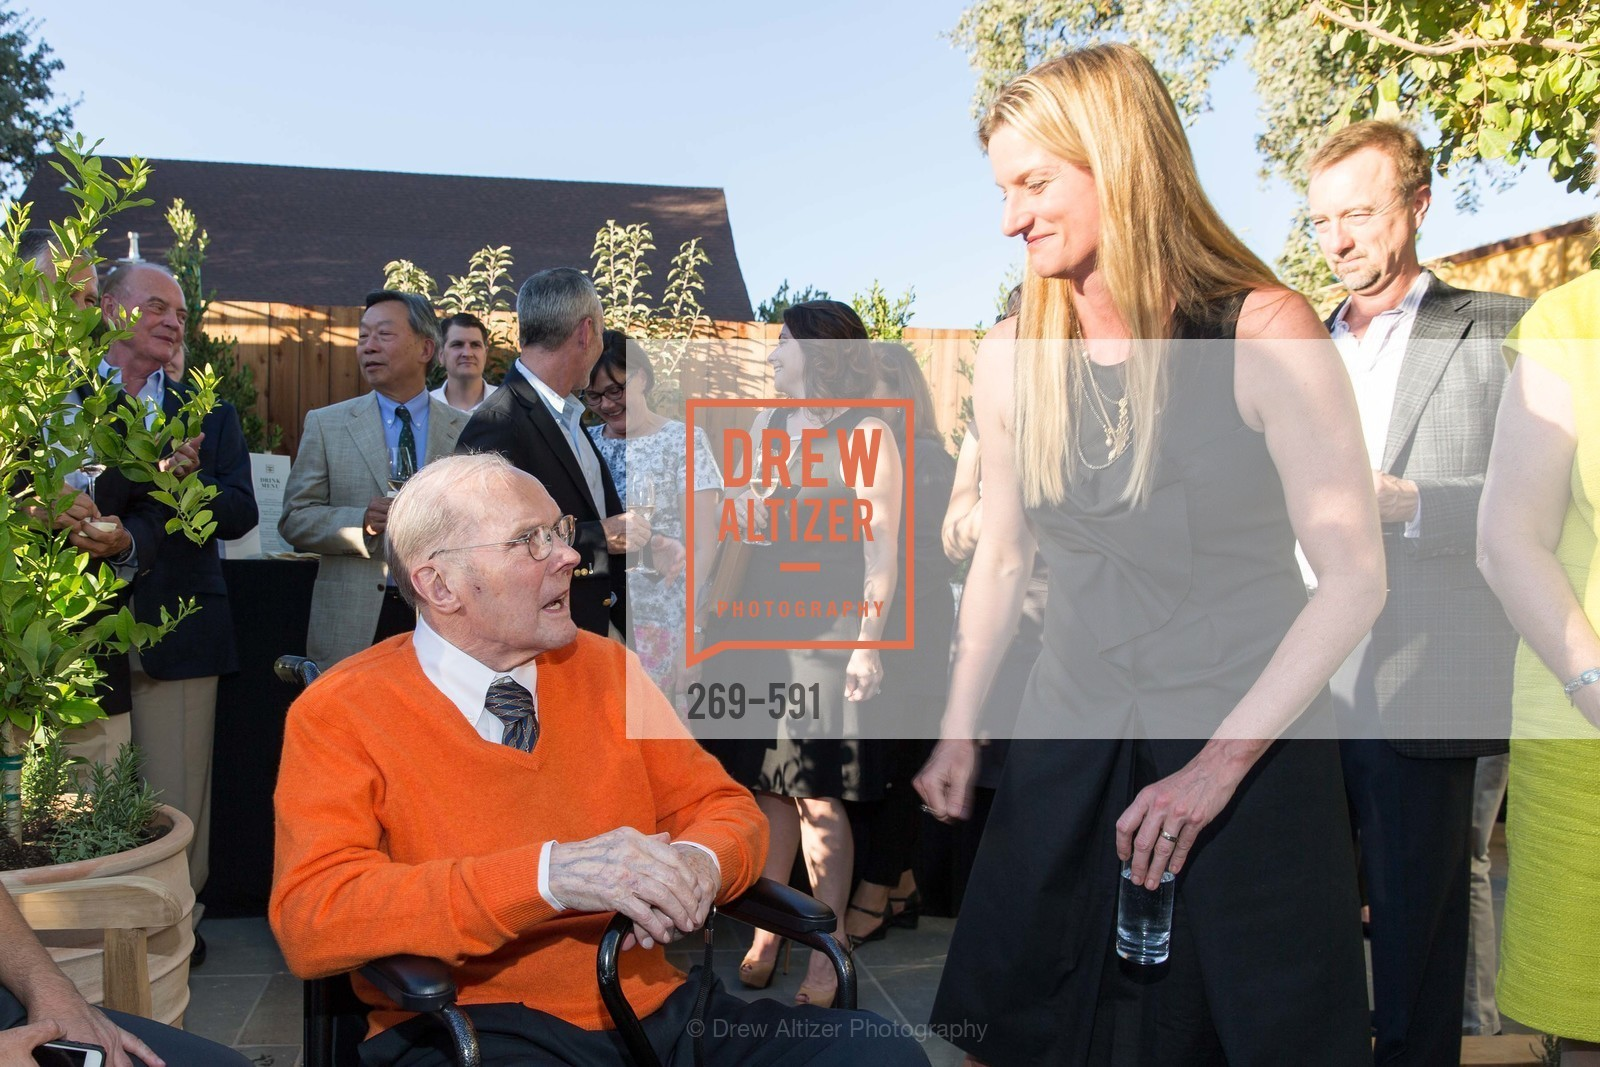 Chuck Williams, Laura Alber, CHUCK WILLIAMS Birthday Celebration, US, October 2nd, 2014,Drew Altizer, Drew Altizer Photography, full-service agency, private events, San Francisco photographer, photographer california